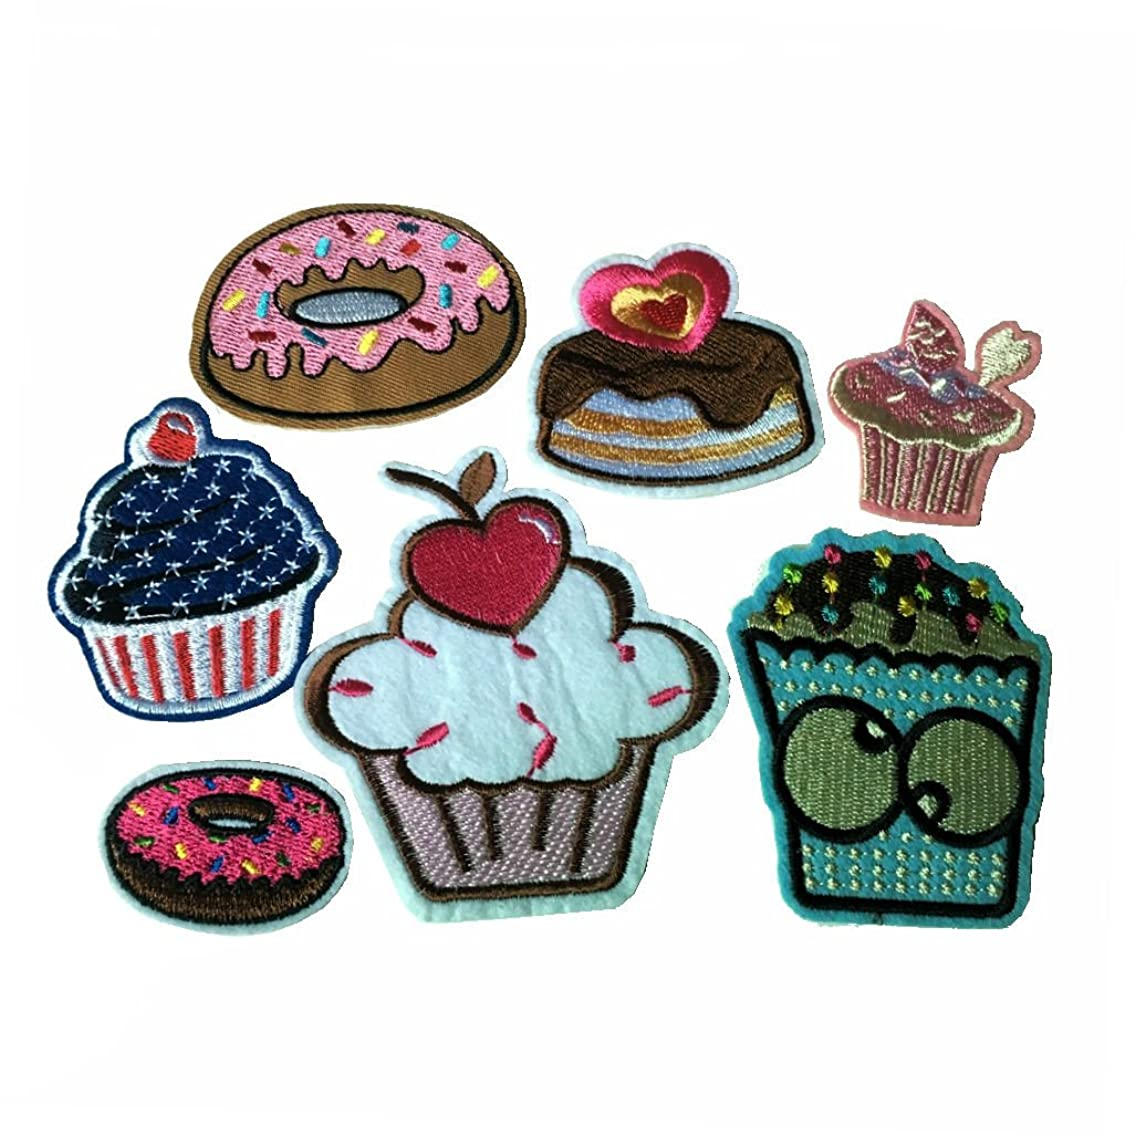 7pcs LIn Cake Iron On Patches Cartoon Embroidery Ice Cream Badges For Sewing Kids Clothing (CAKE A)